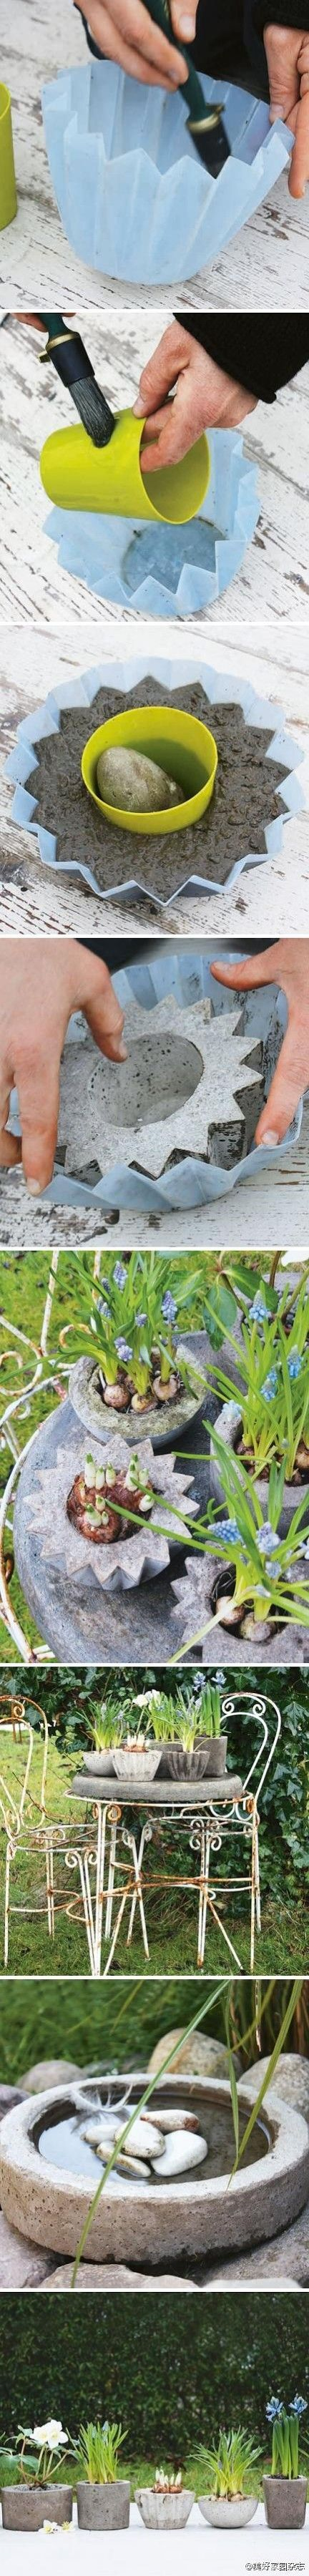 How To Make a Pot Planter From Concrete      You Should Also See :    Gardening Tips and Tricks That Everyone Should Know  Gardening Hac...